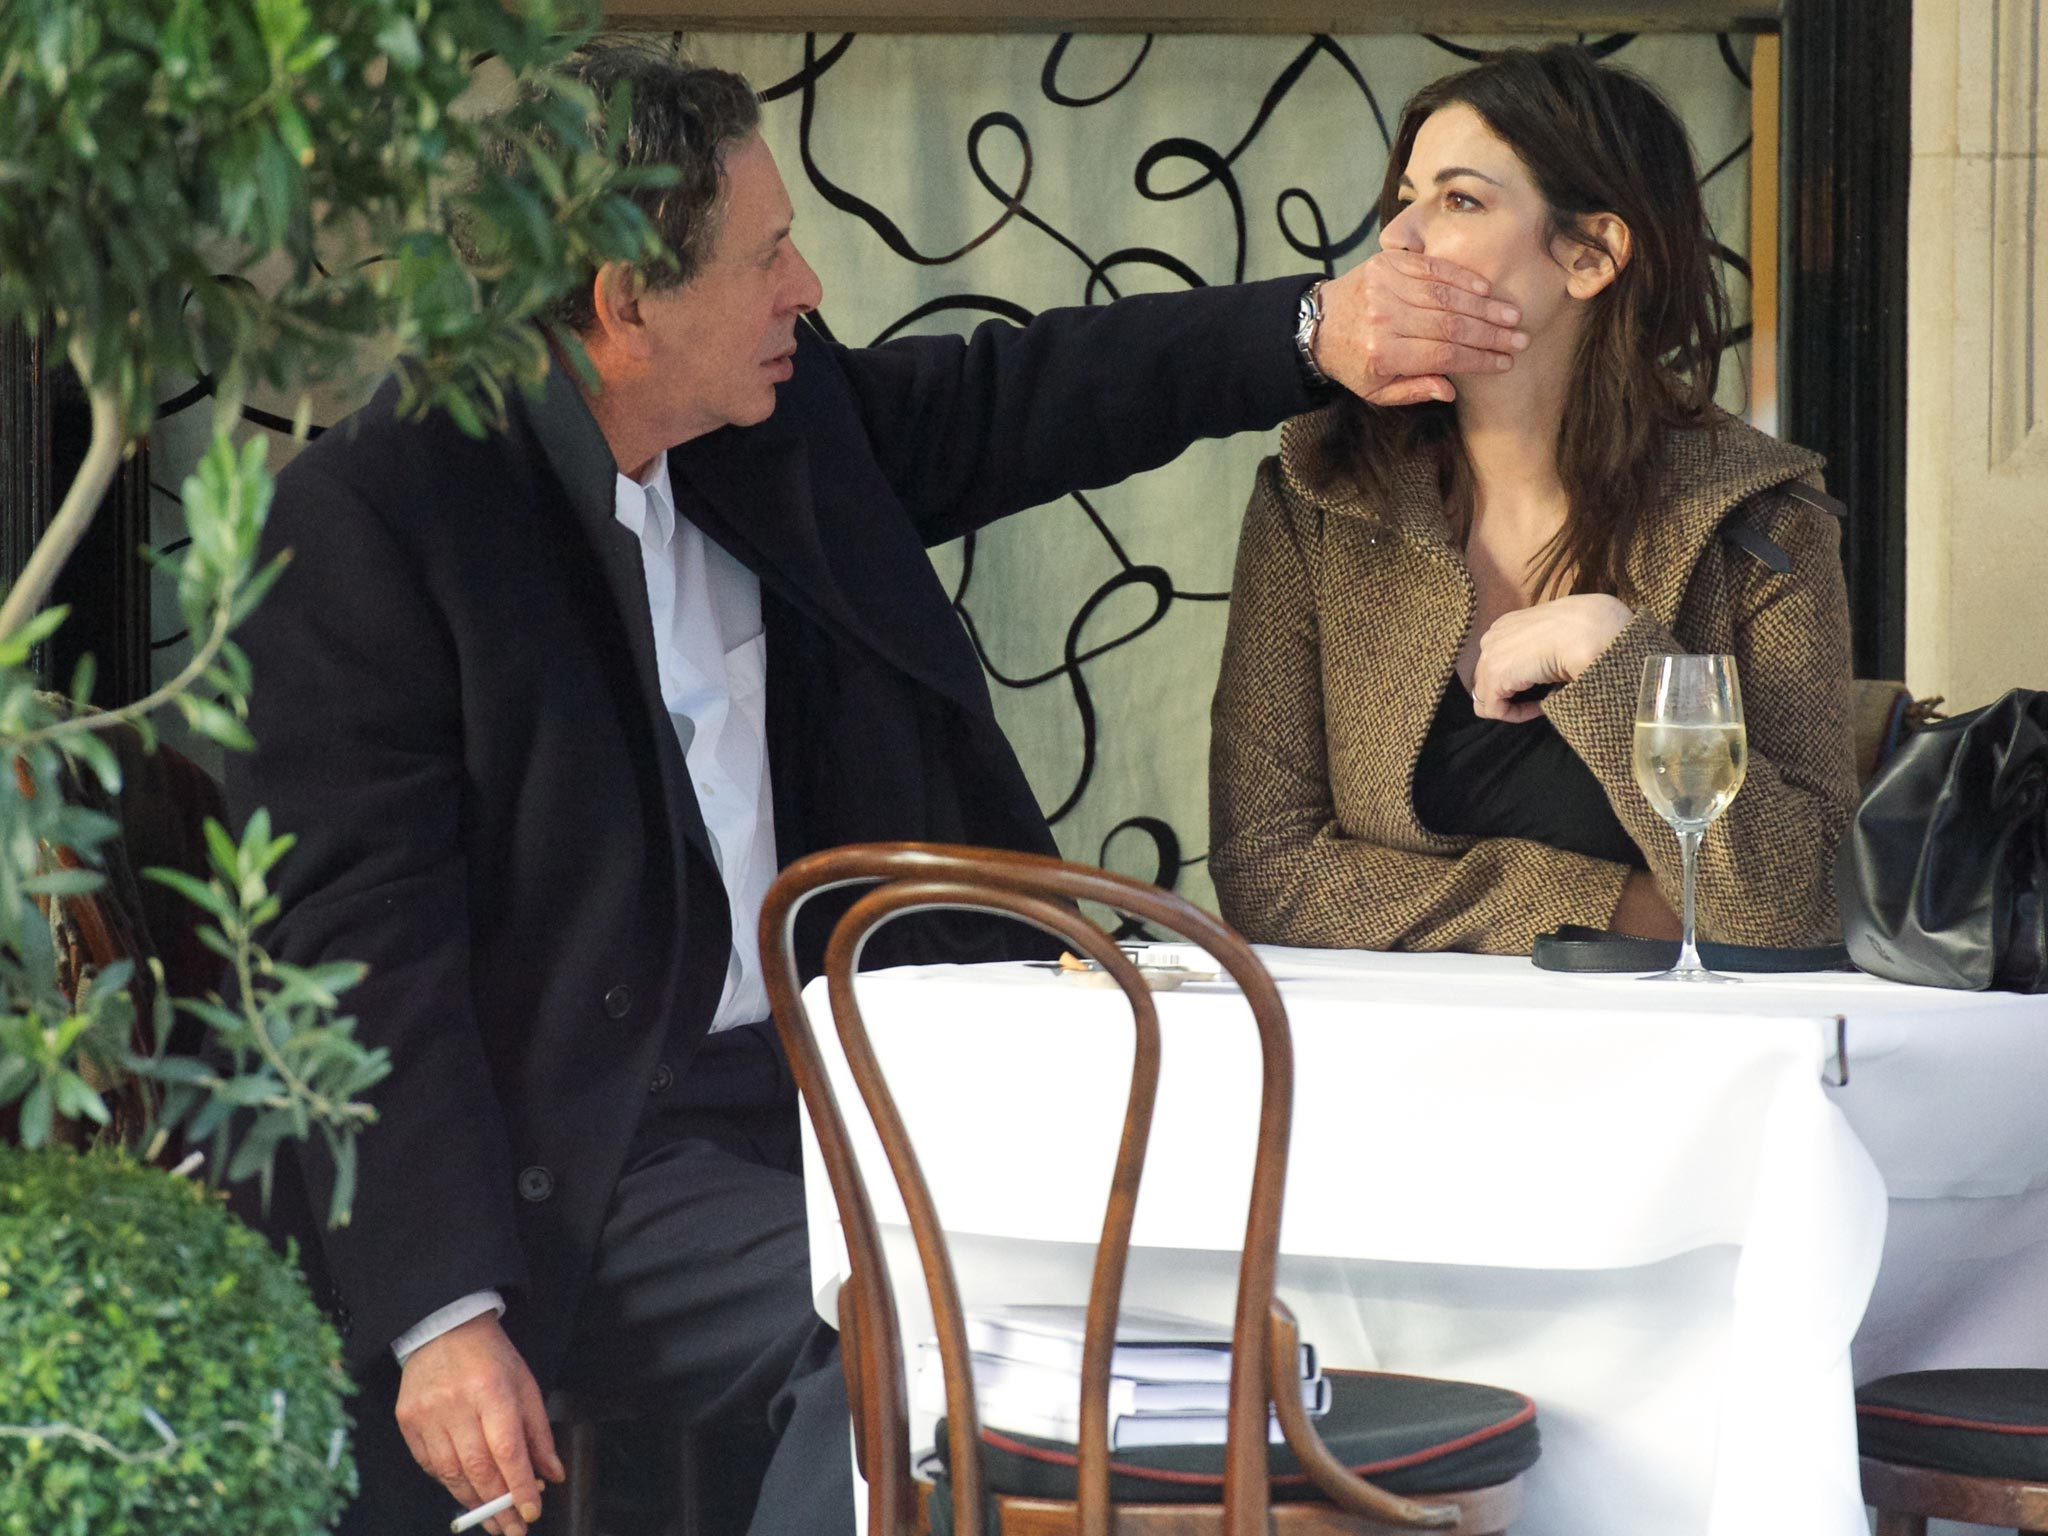 Should We Intervene Our Response To The Charles Saatchi And Nigella Lawson Assault Is Shocking